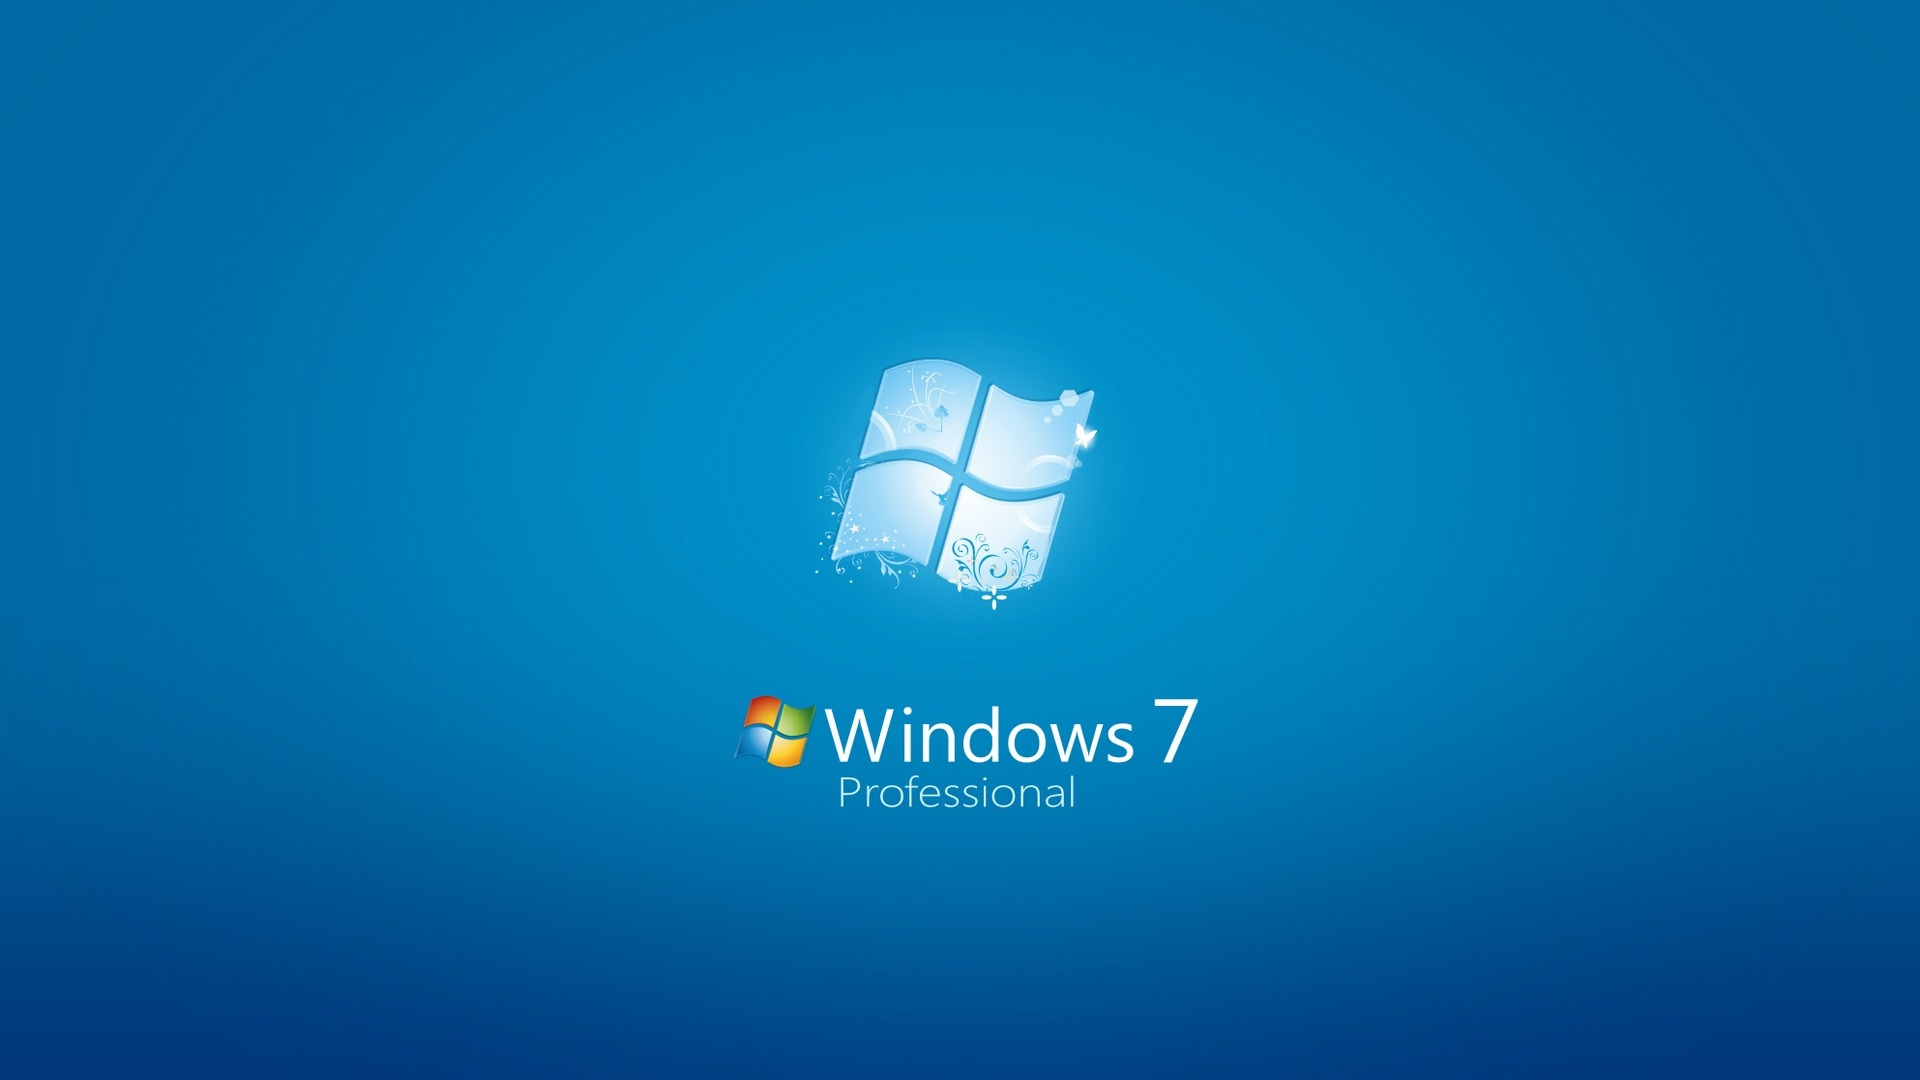 HD Wallpapers for Windows 7 1920x1080